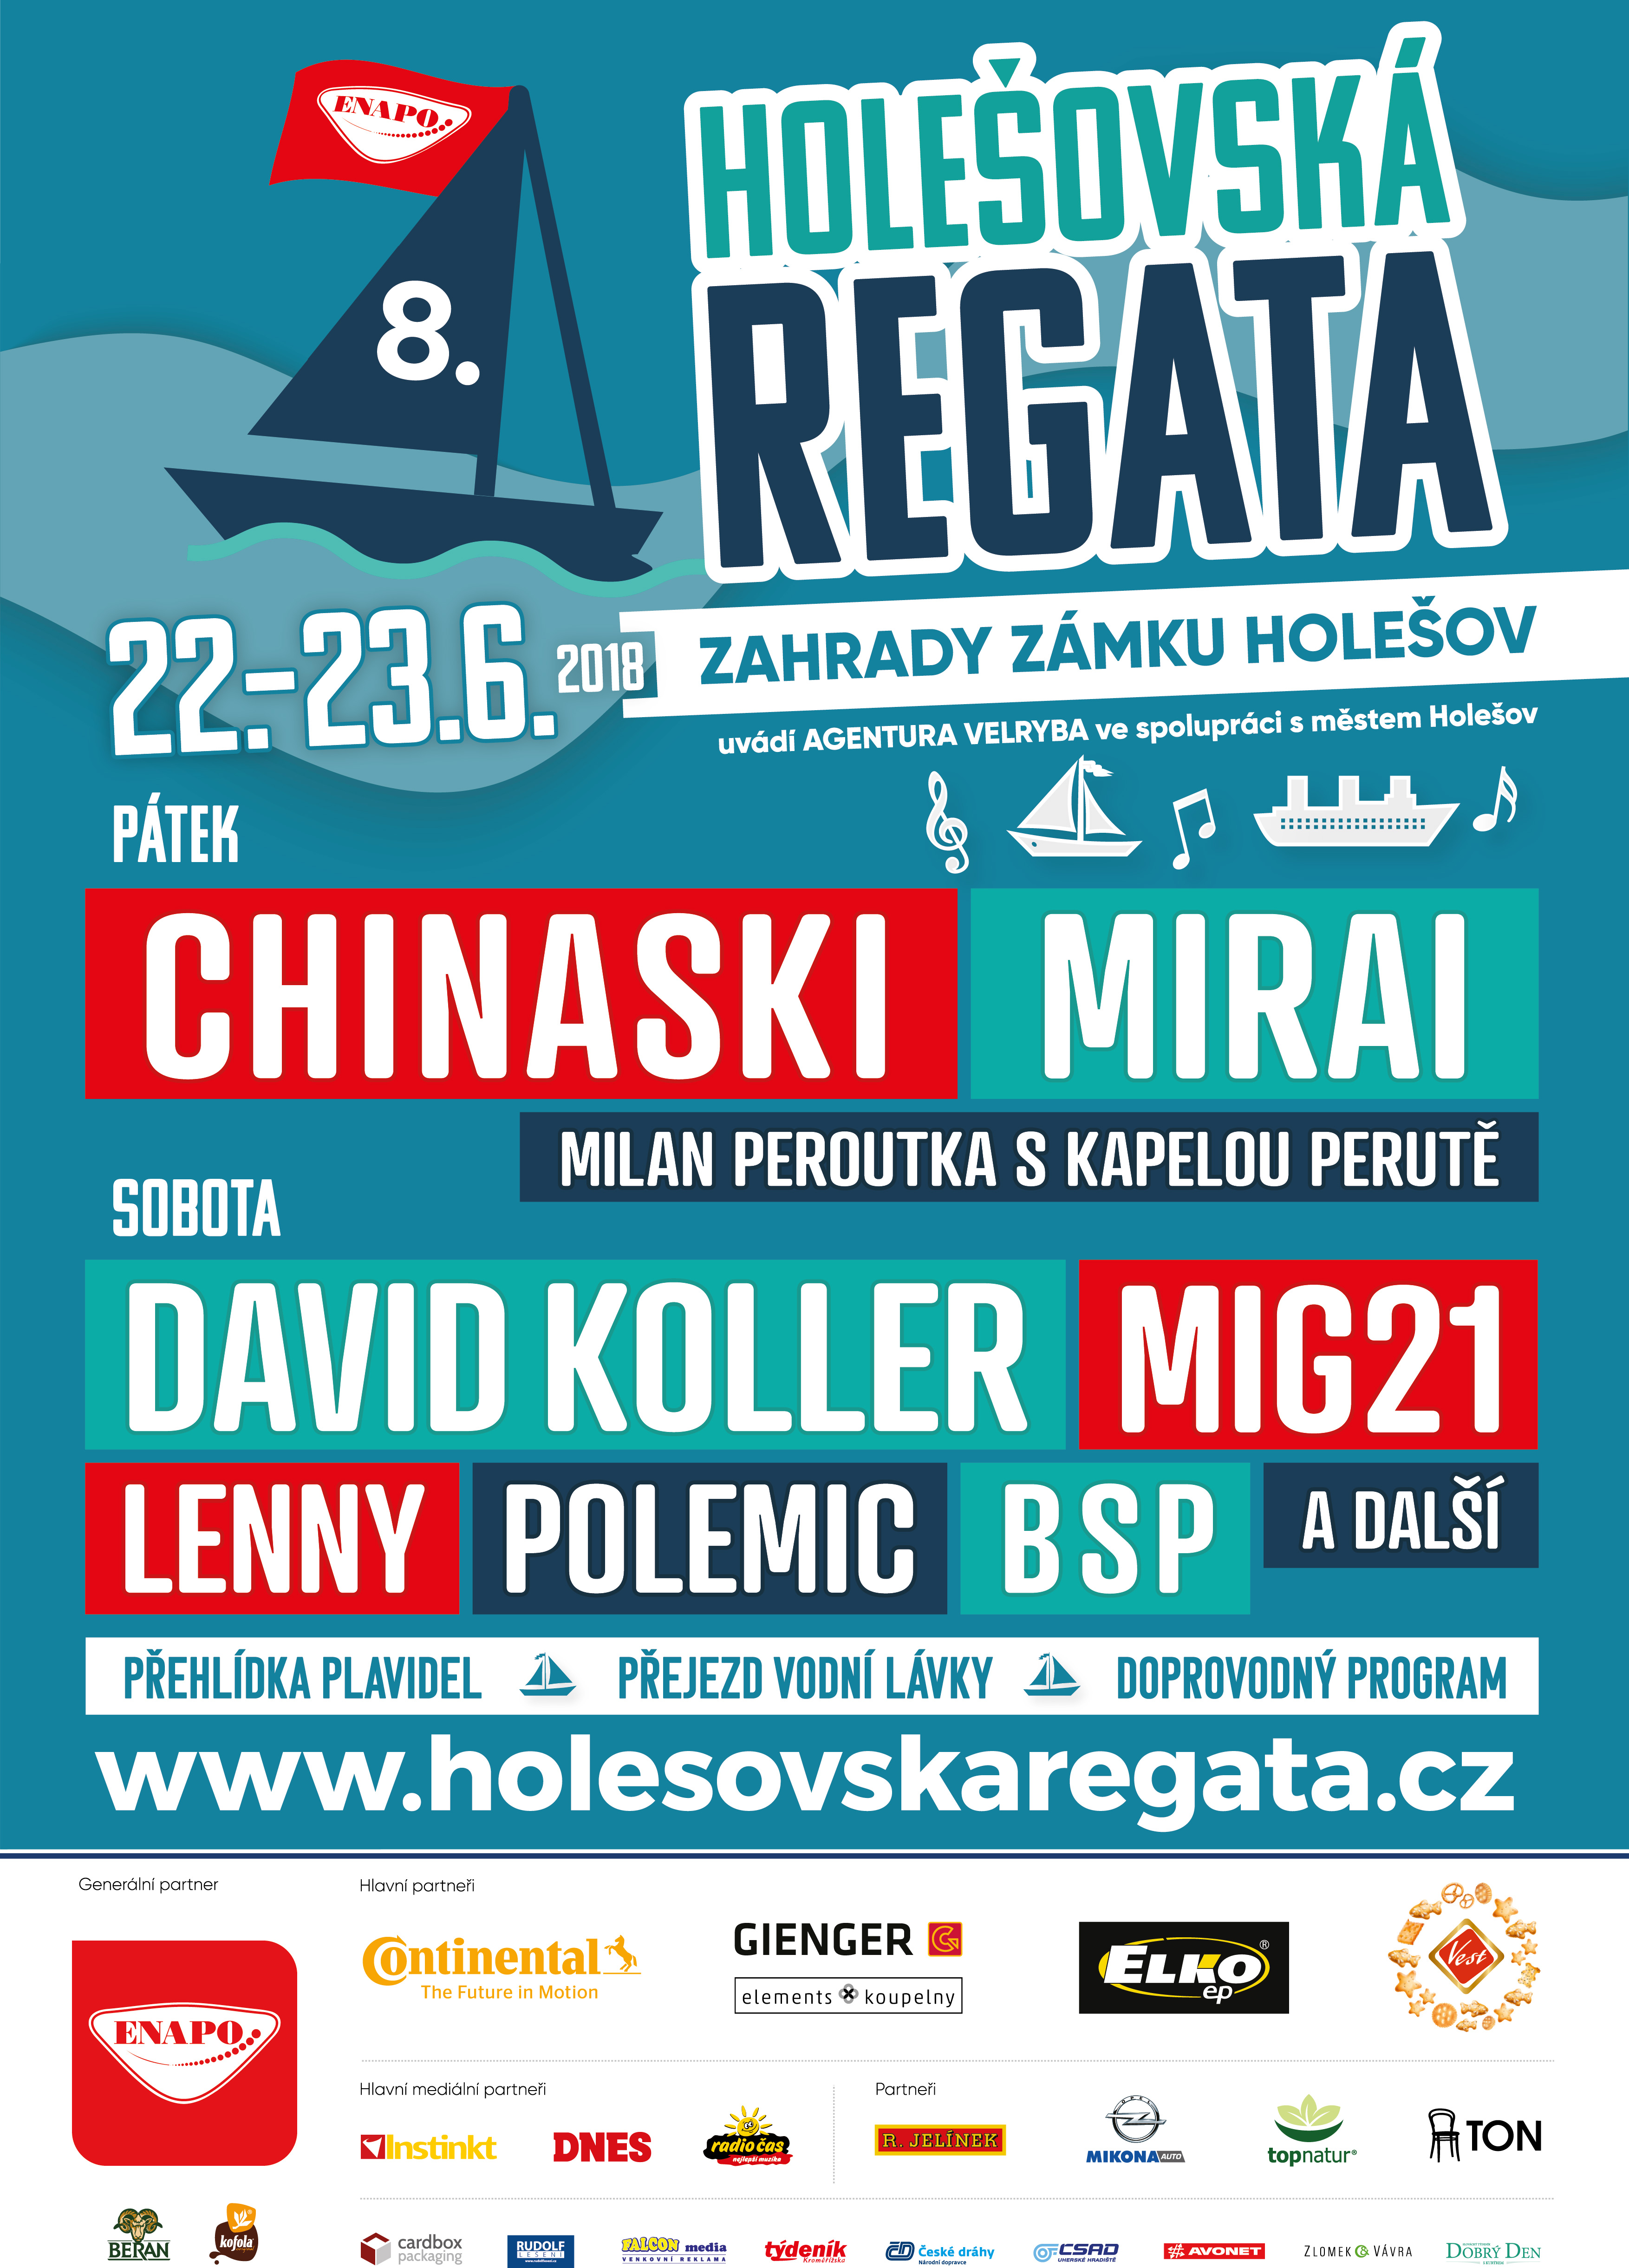 holesovska-regata-2018.jpg